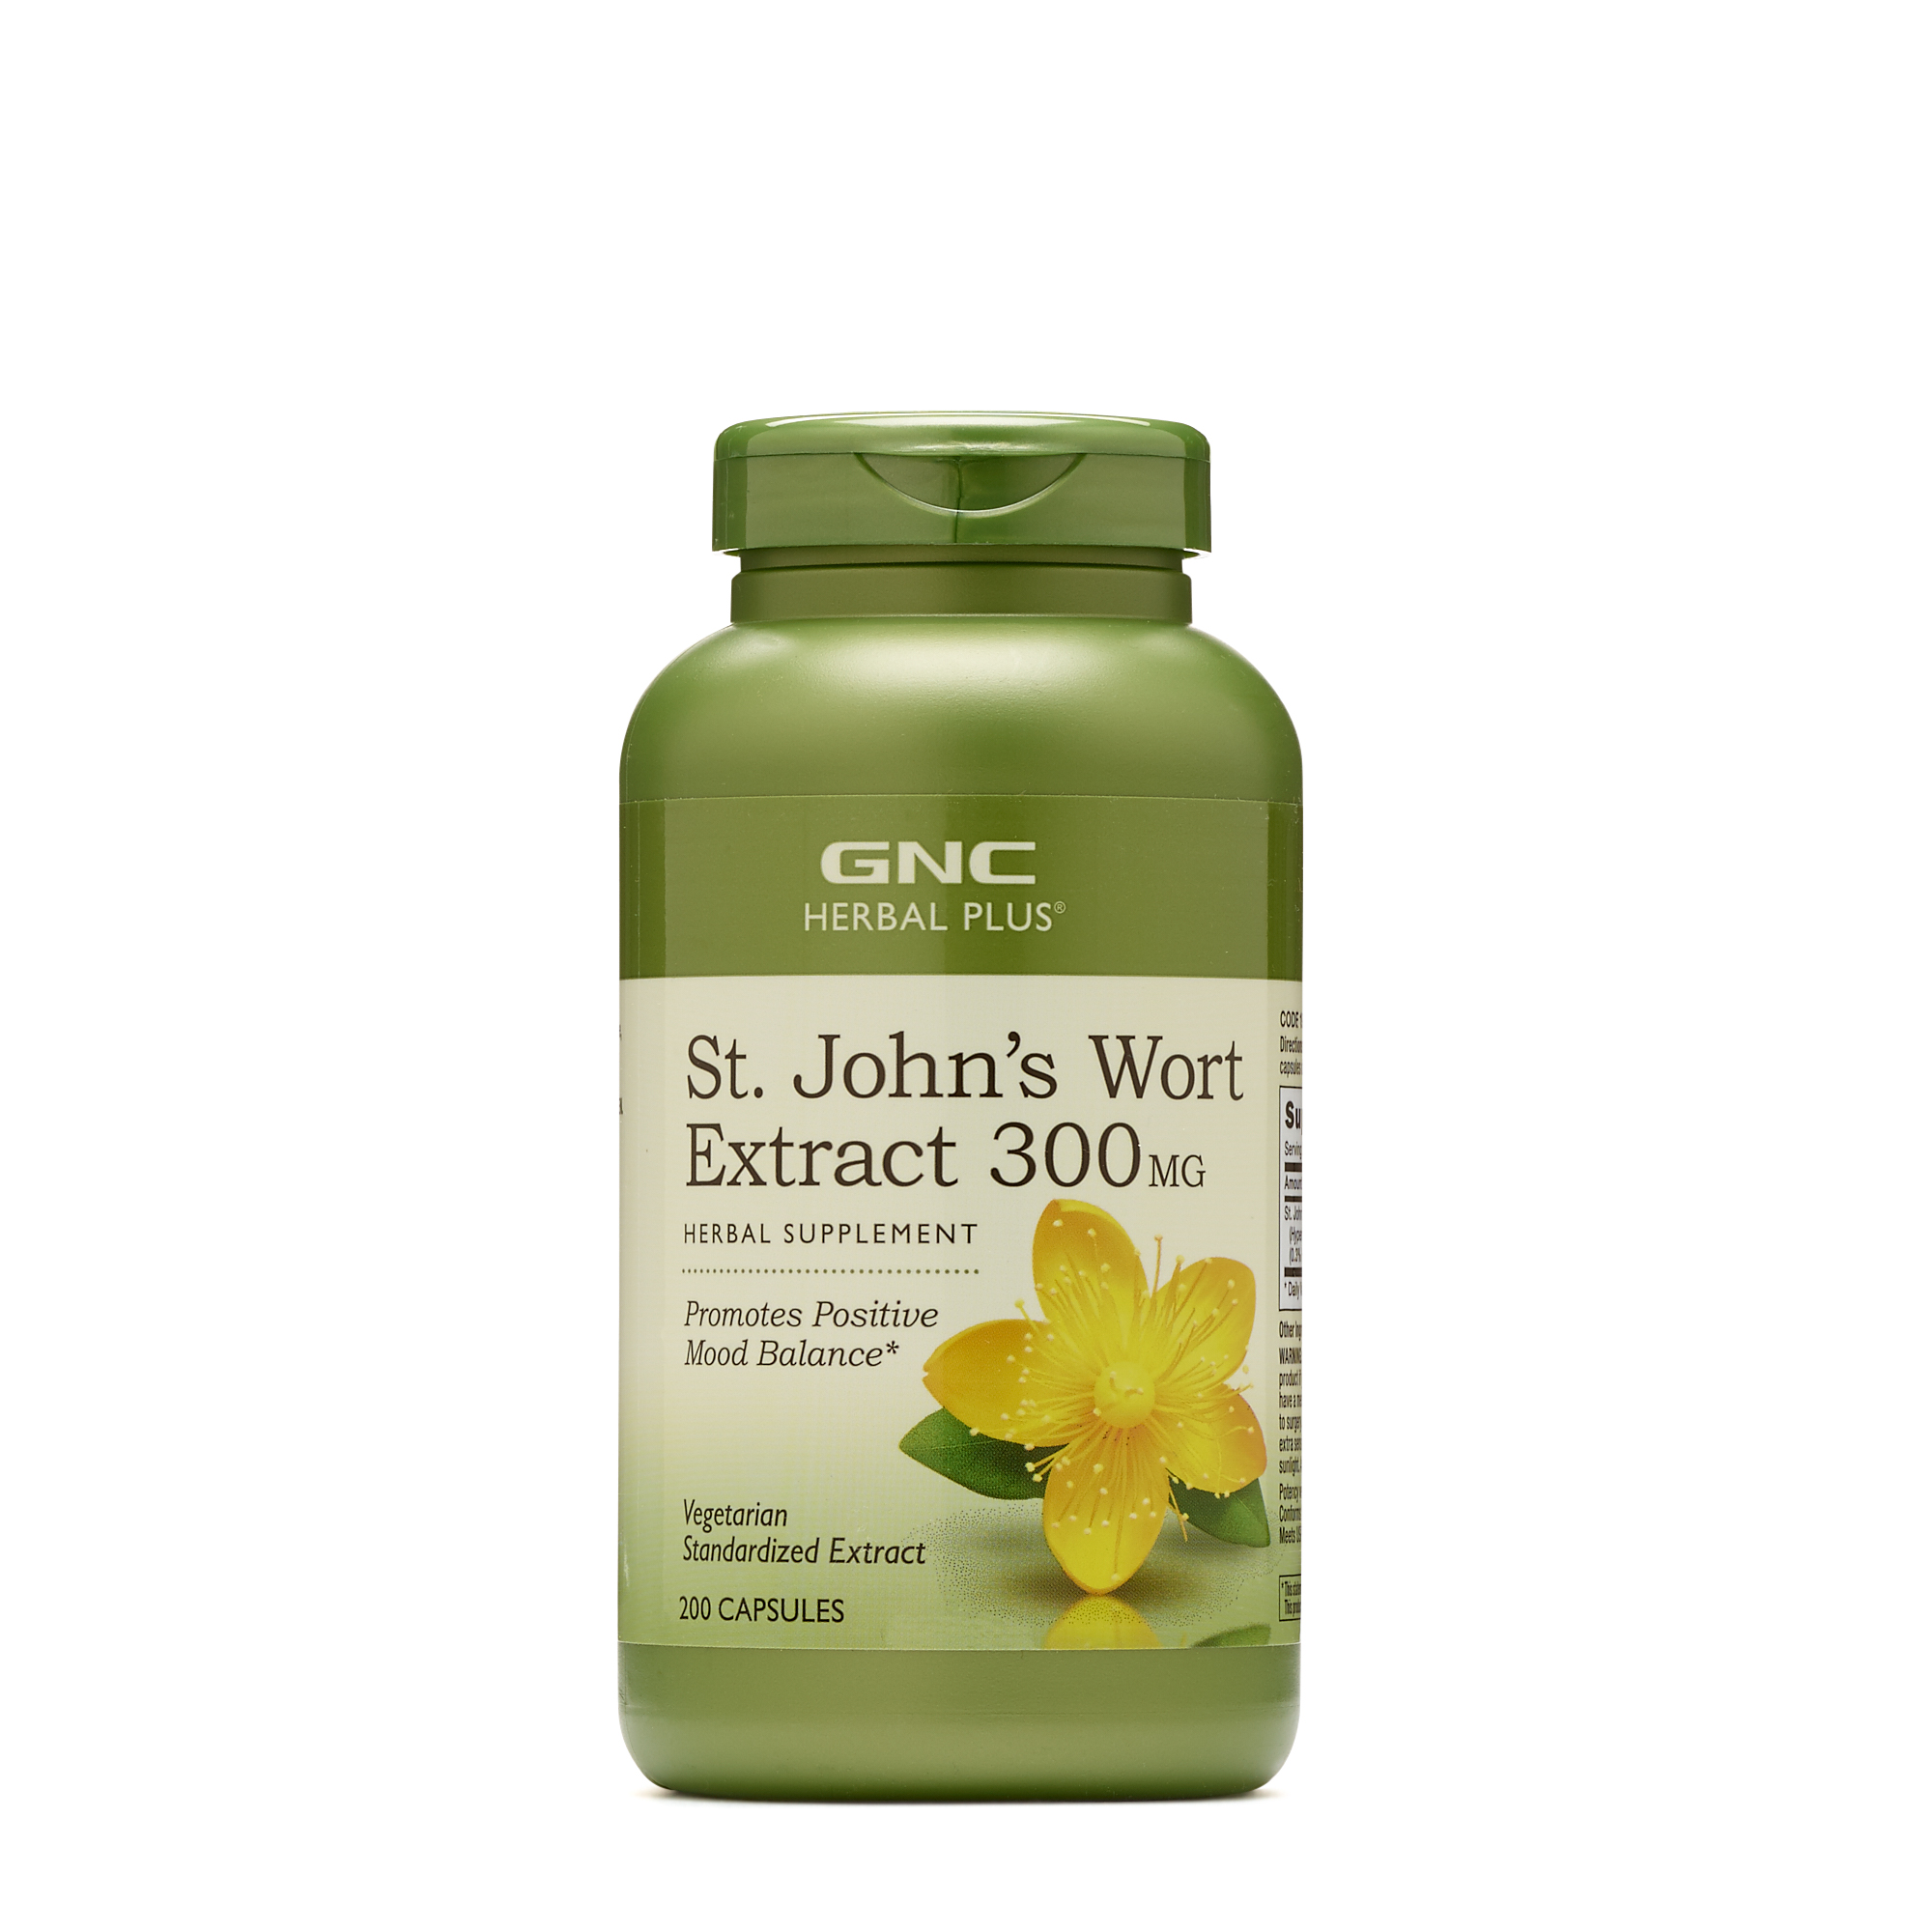 Discussion on this topic: St. Johns Wort, st-johns-wort/